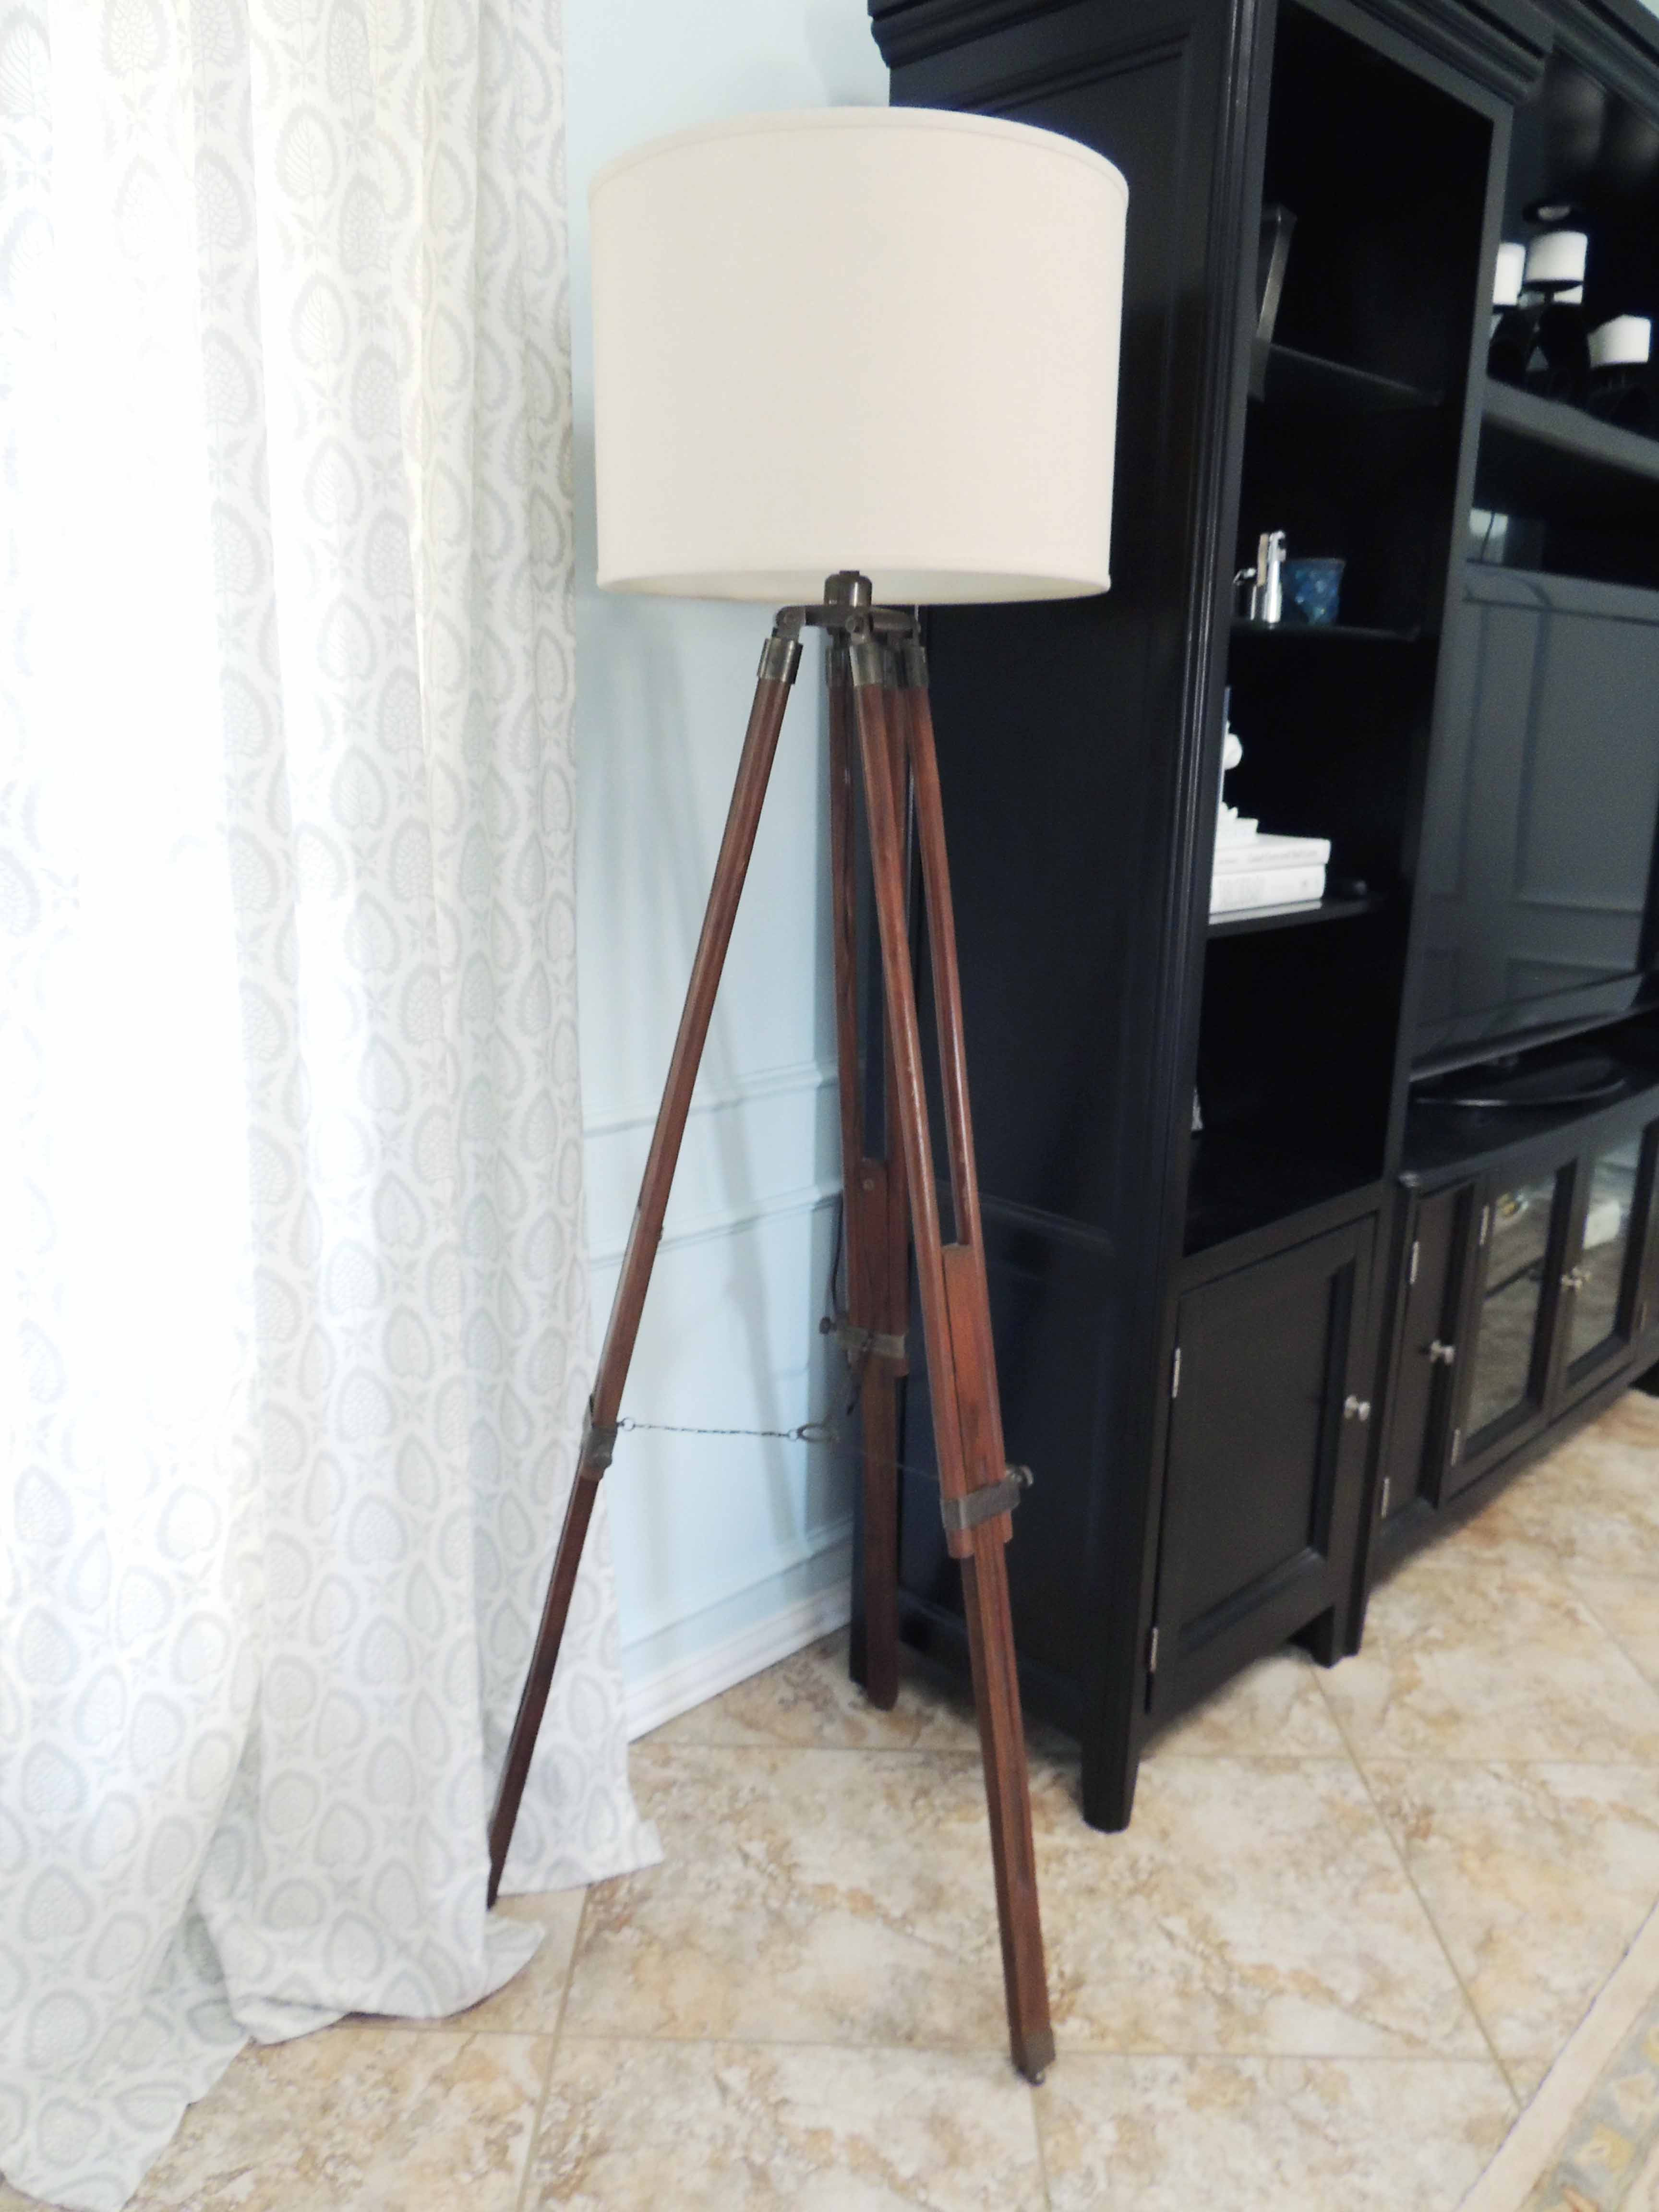 Best ideas about DIY Floor Lamp . Save or Pin I Love Lamp Now.